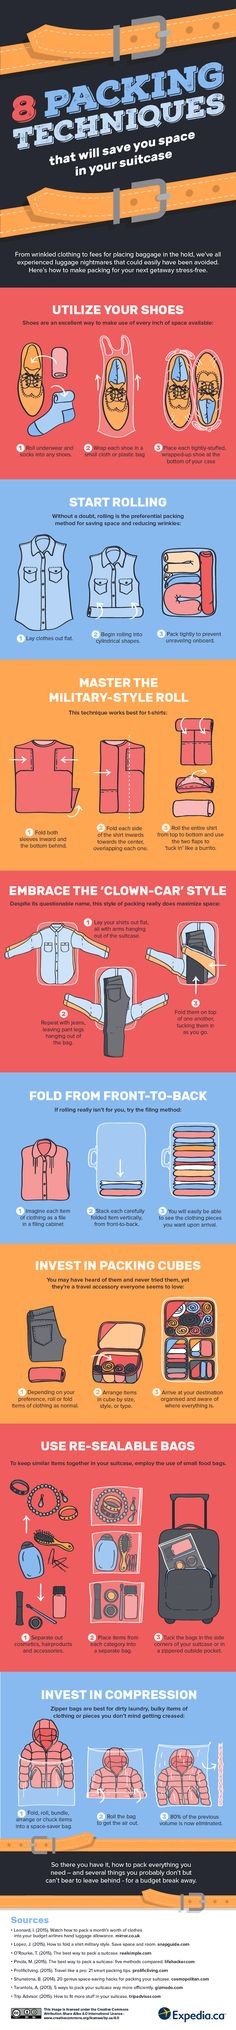 These Packing Techniques Save Space and Lets You Carry More